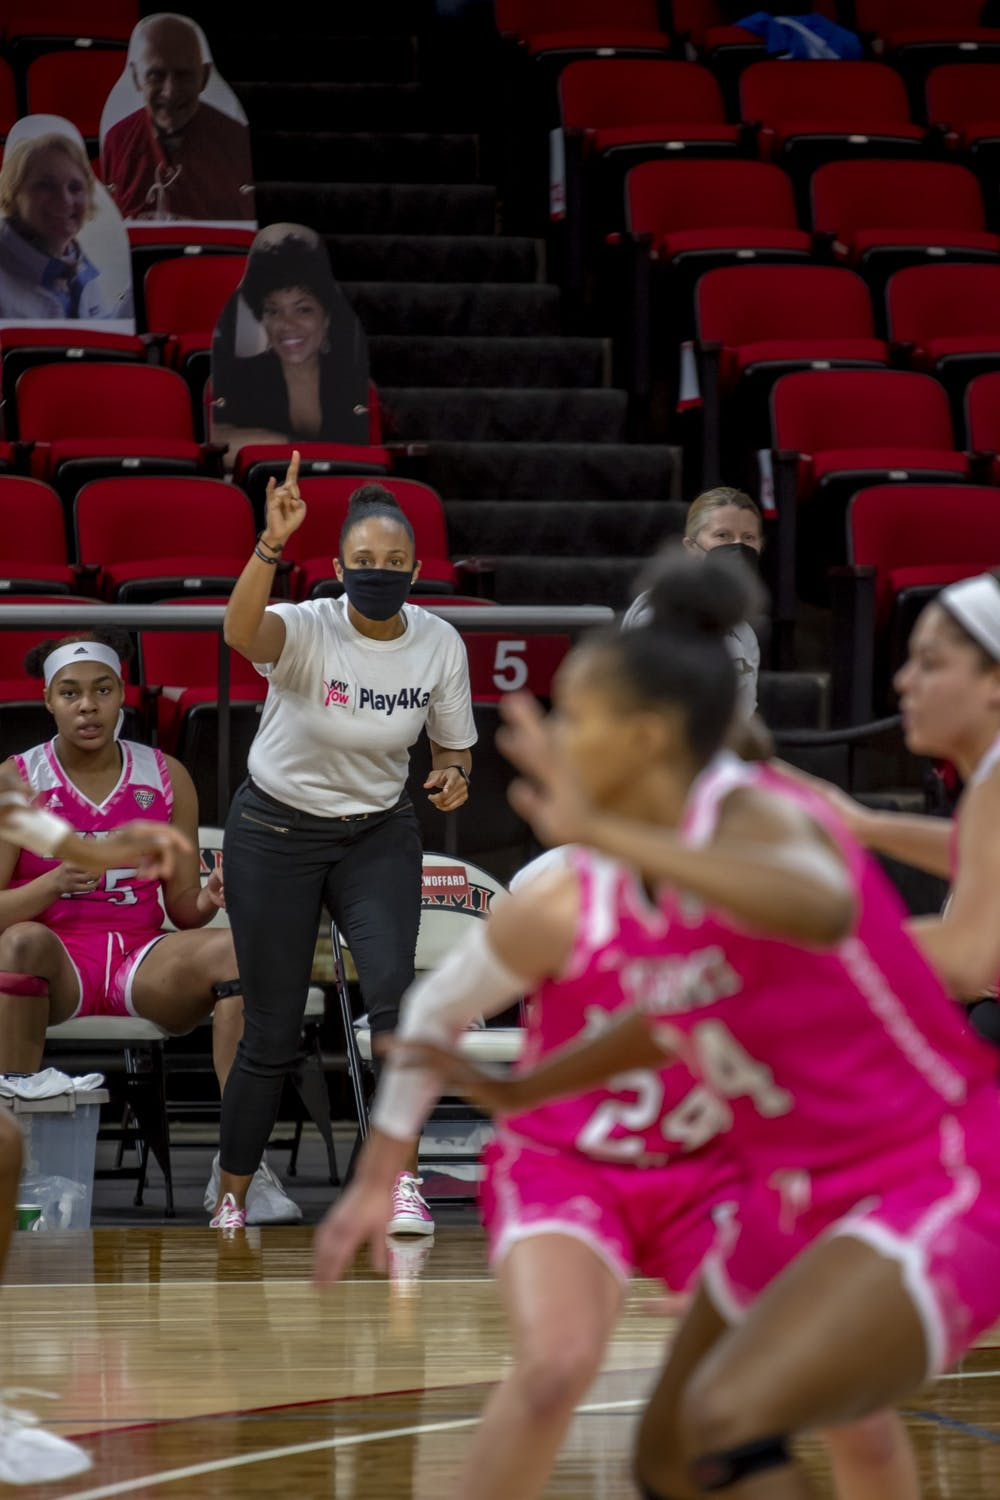 <p>Women&#x27;s basketball assistant coach Tiffany Swoffard (pictured, in white) has had to adapt her recruiting efforts during the COVID-19 pandemic.</p>